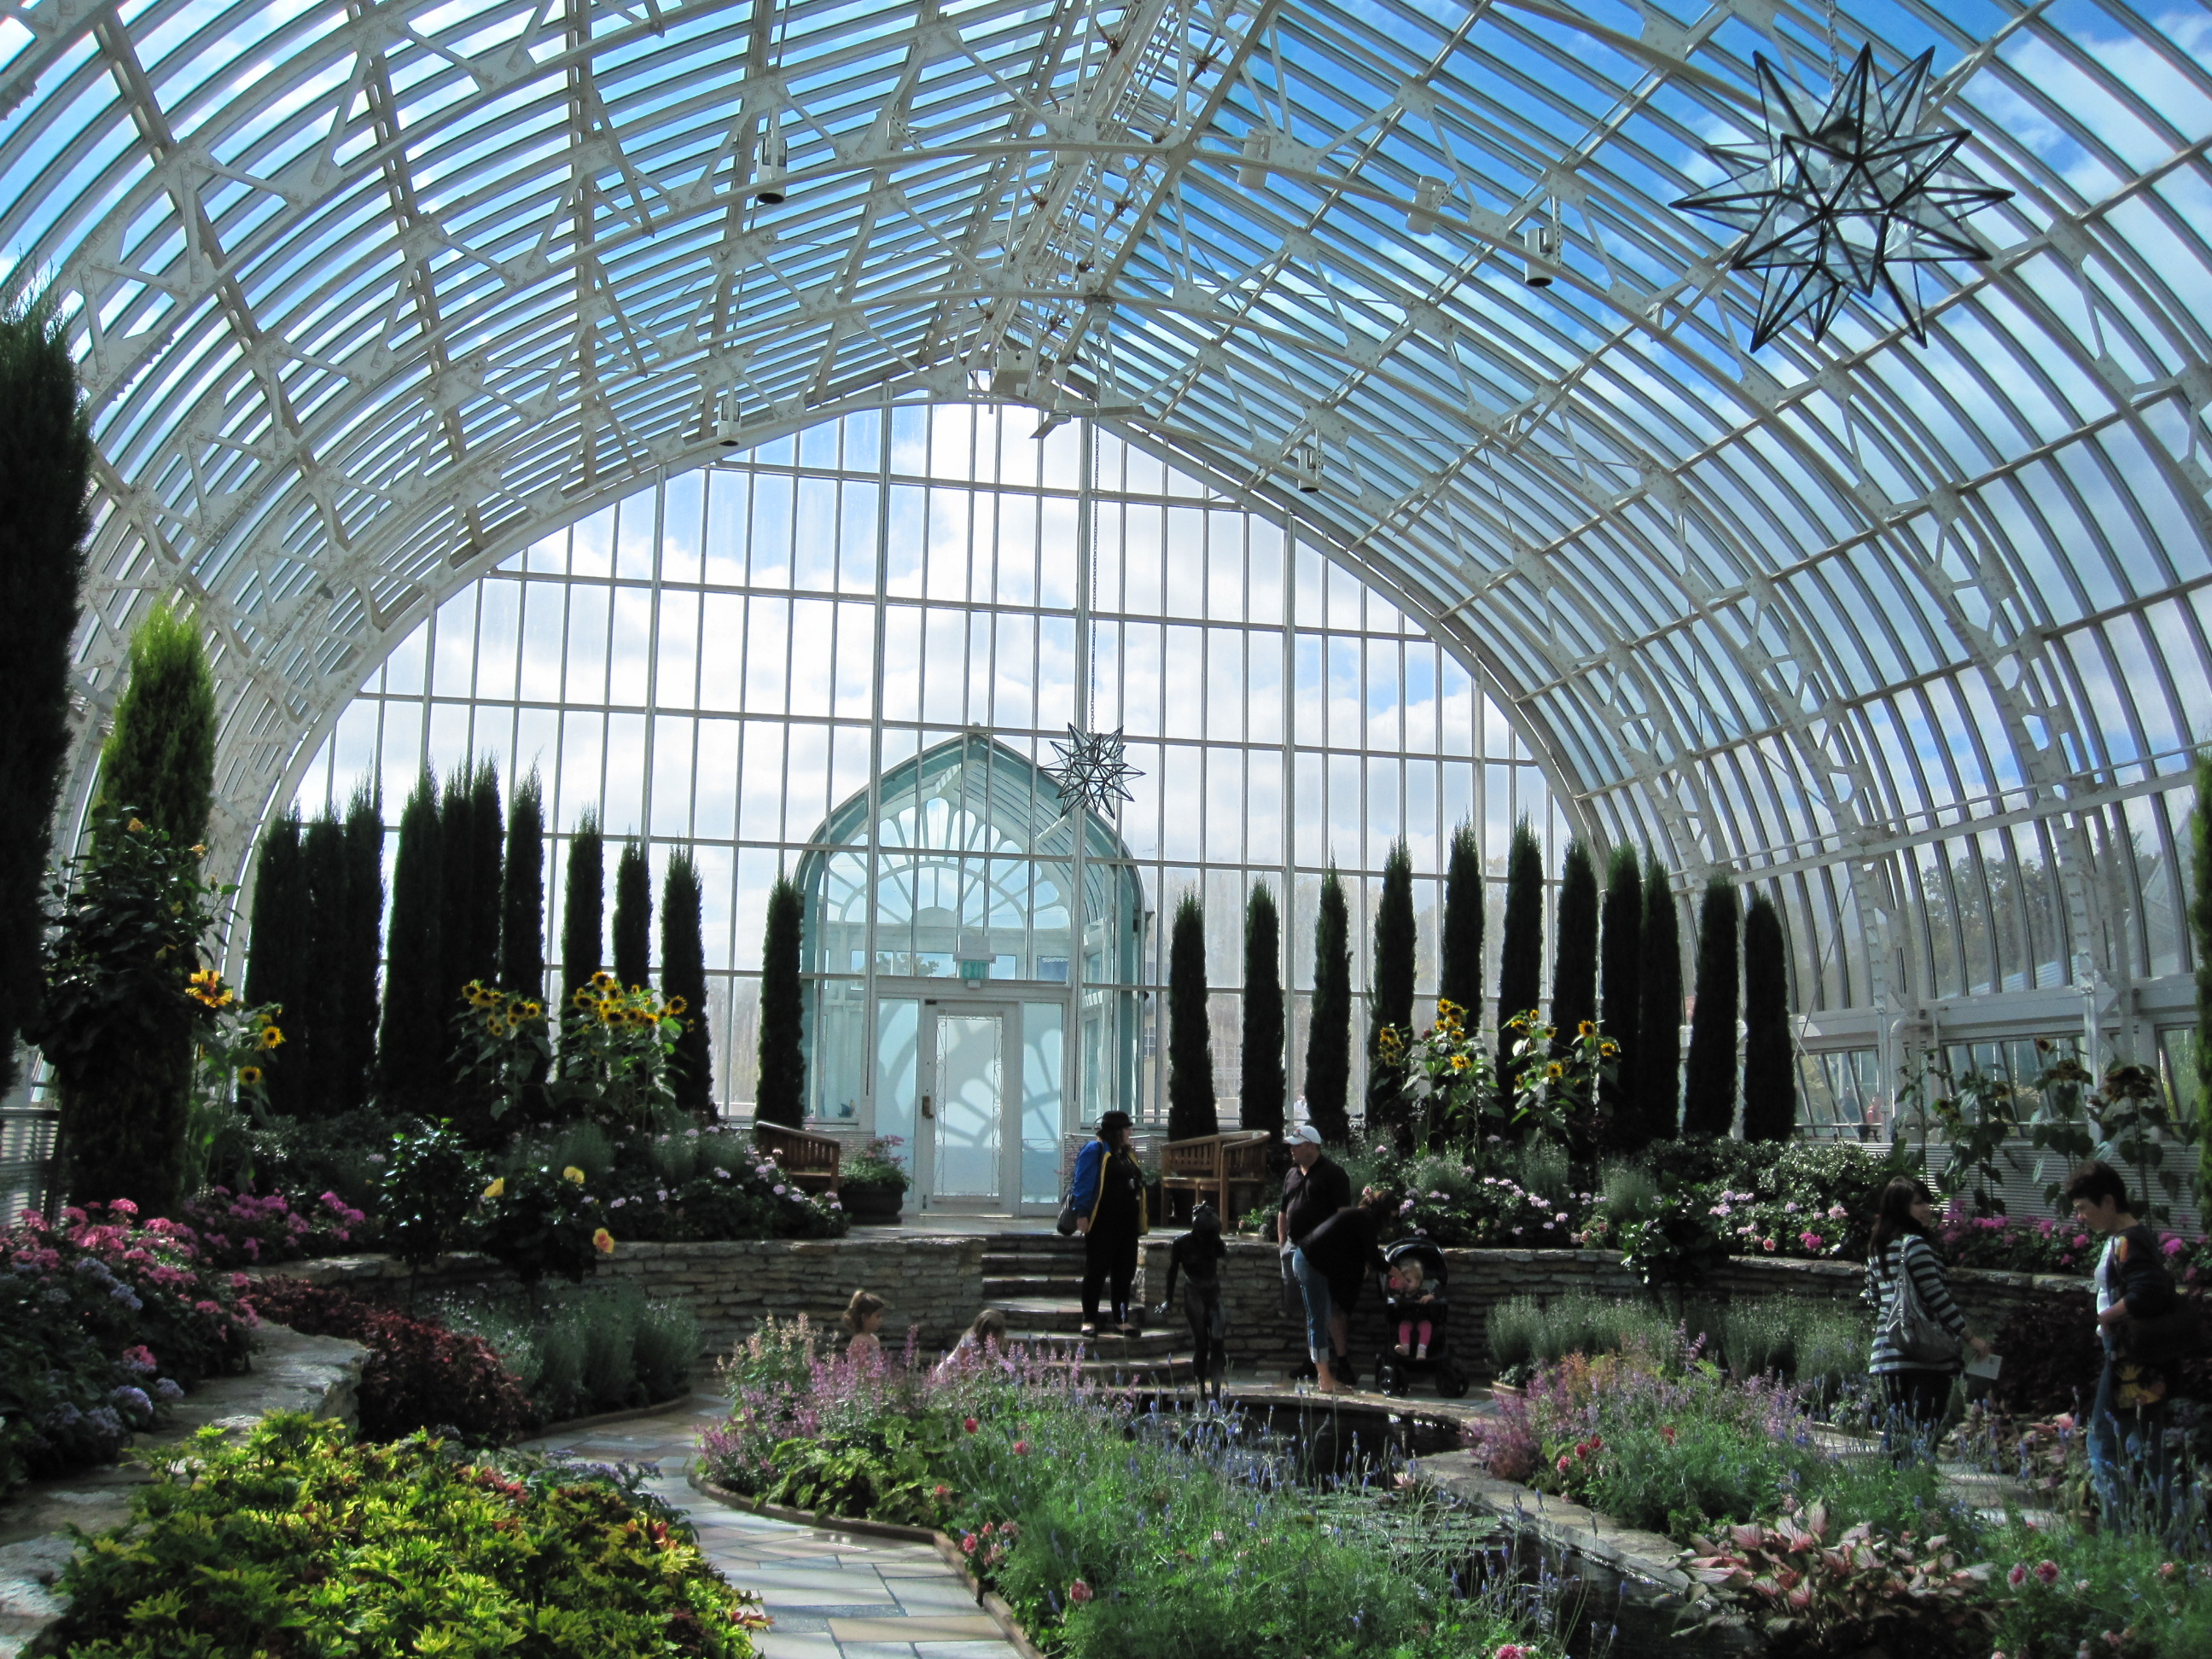 Check Out All The Como Park Zoo And Conservatory Has To Offer Places BOOMSbeat